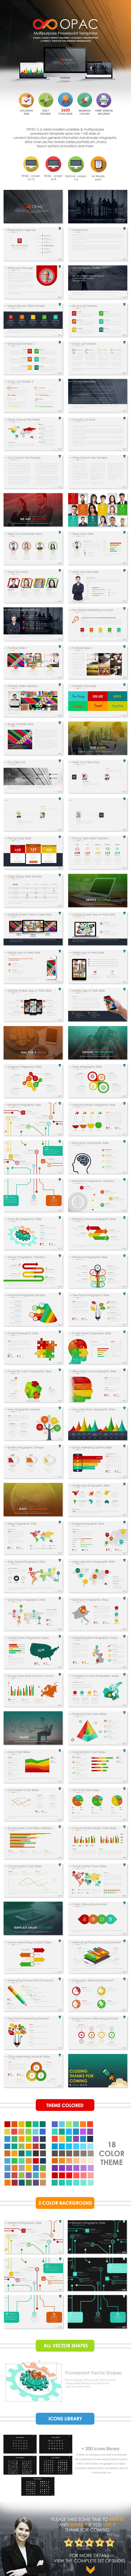 OPAC - Powerpoint Templates - Modern Presentation (PowerPoint Templates)